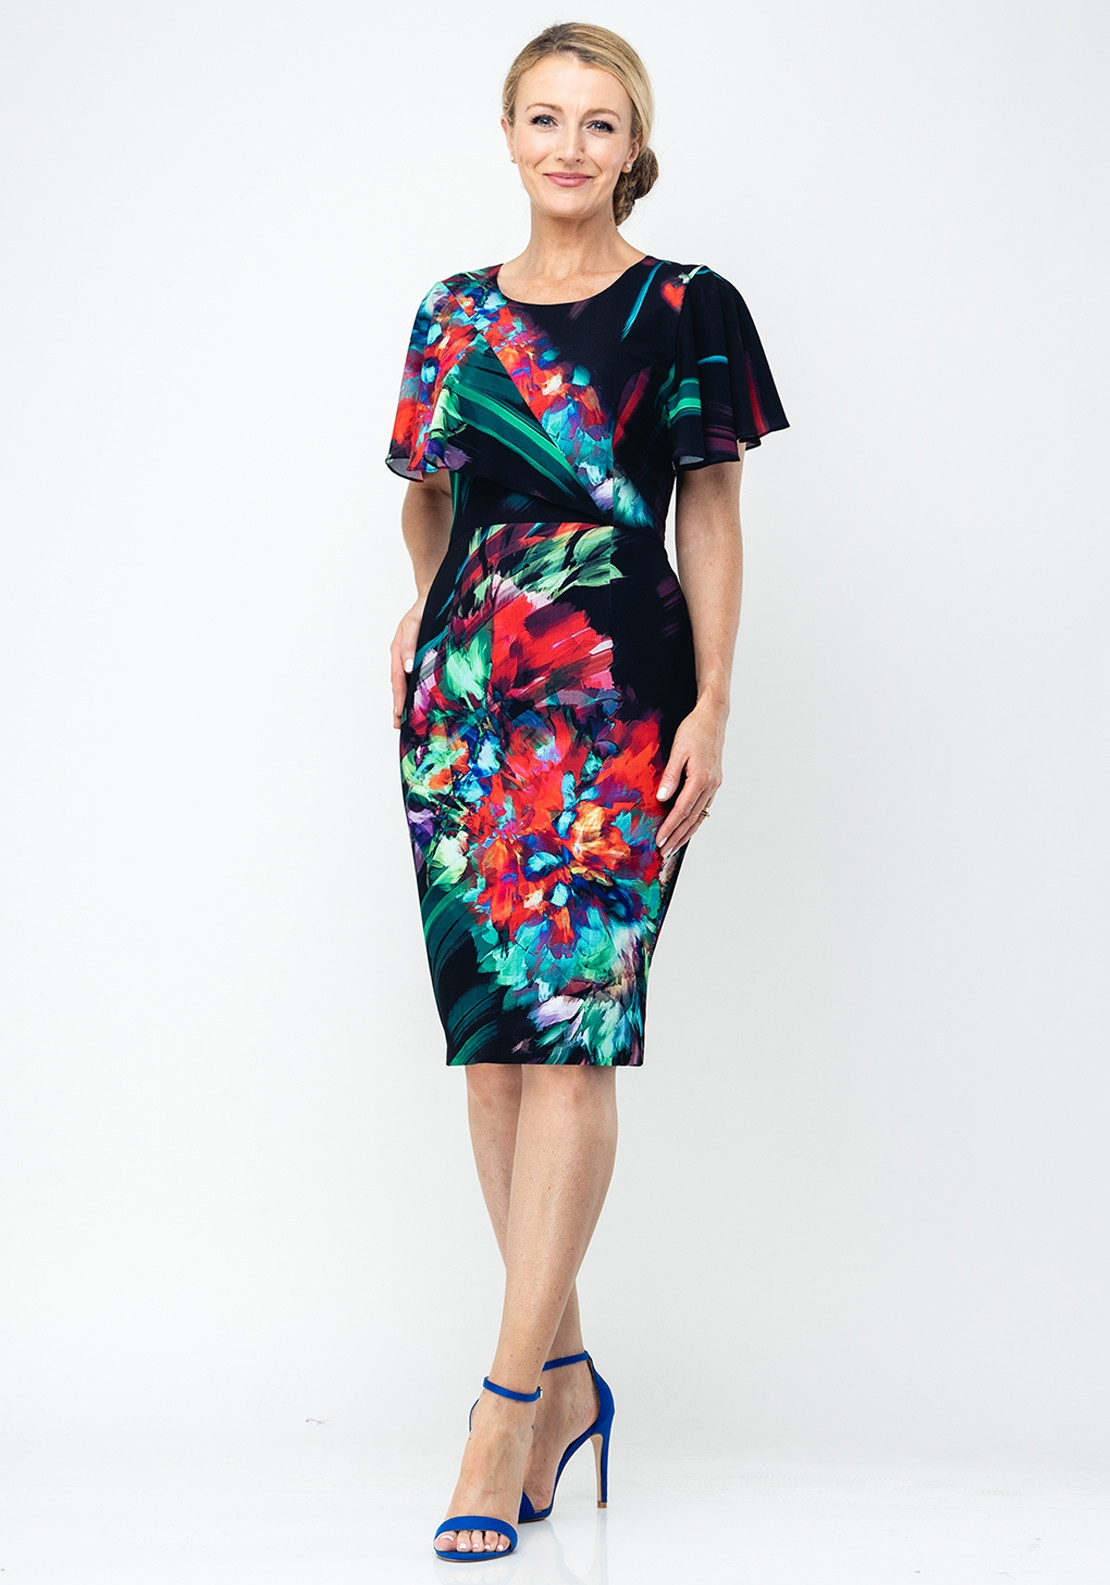 58c844d673dc54 Lizabella Digital Floral Pencil Dress, Multi-Coloured | McElhinneys